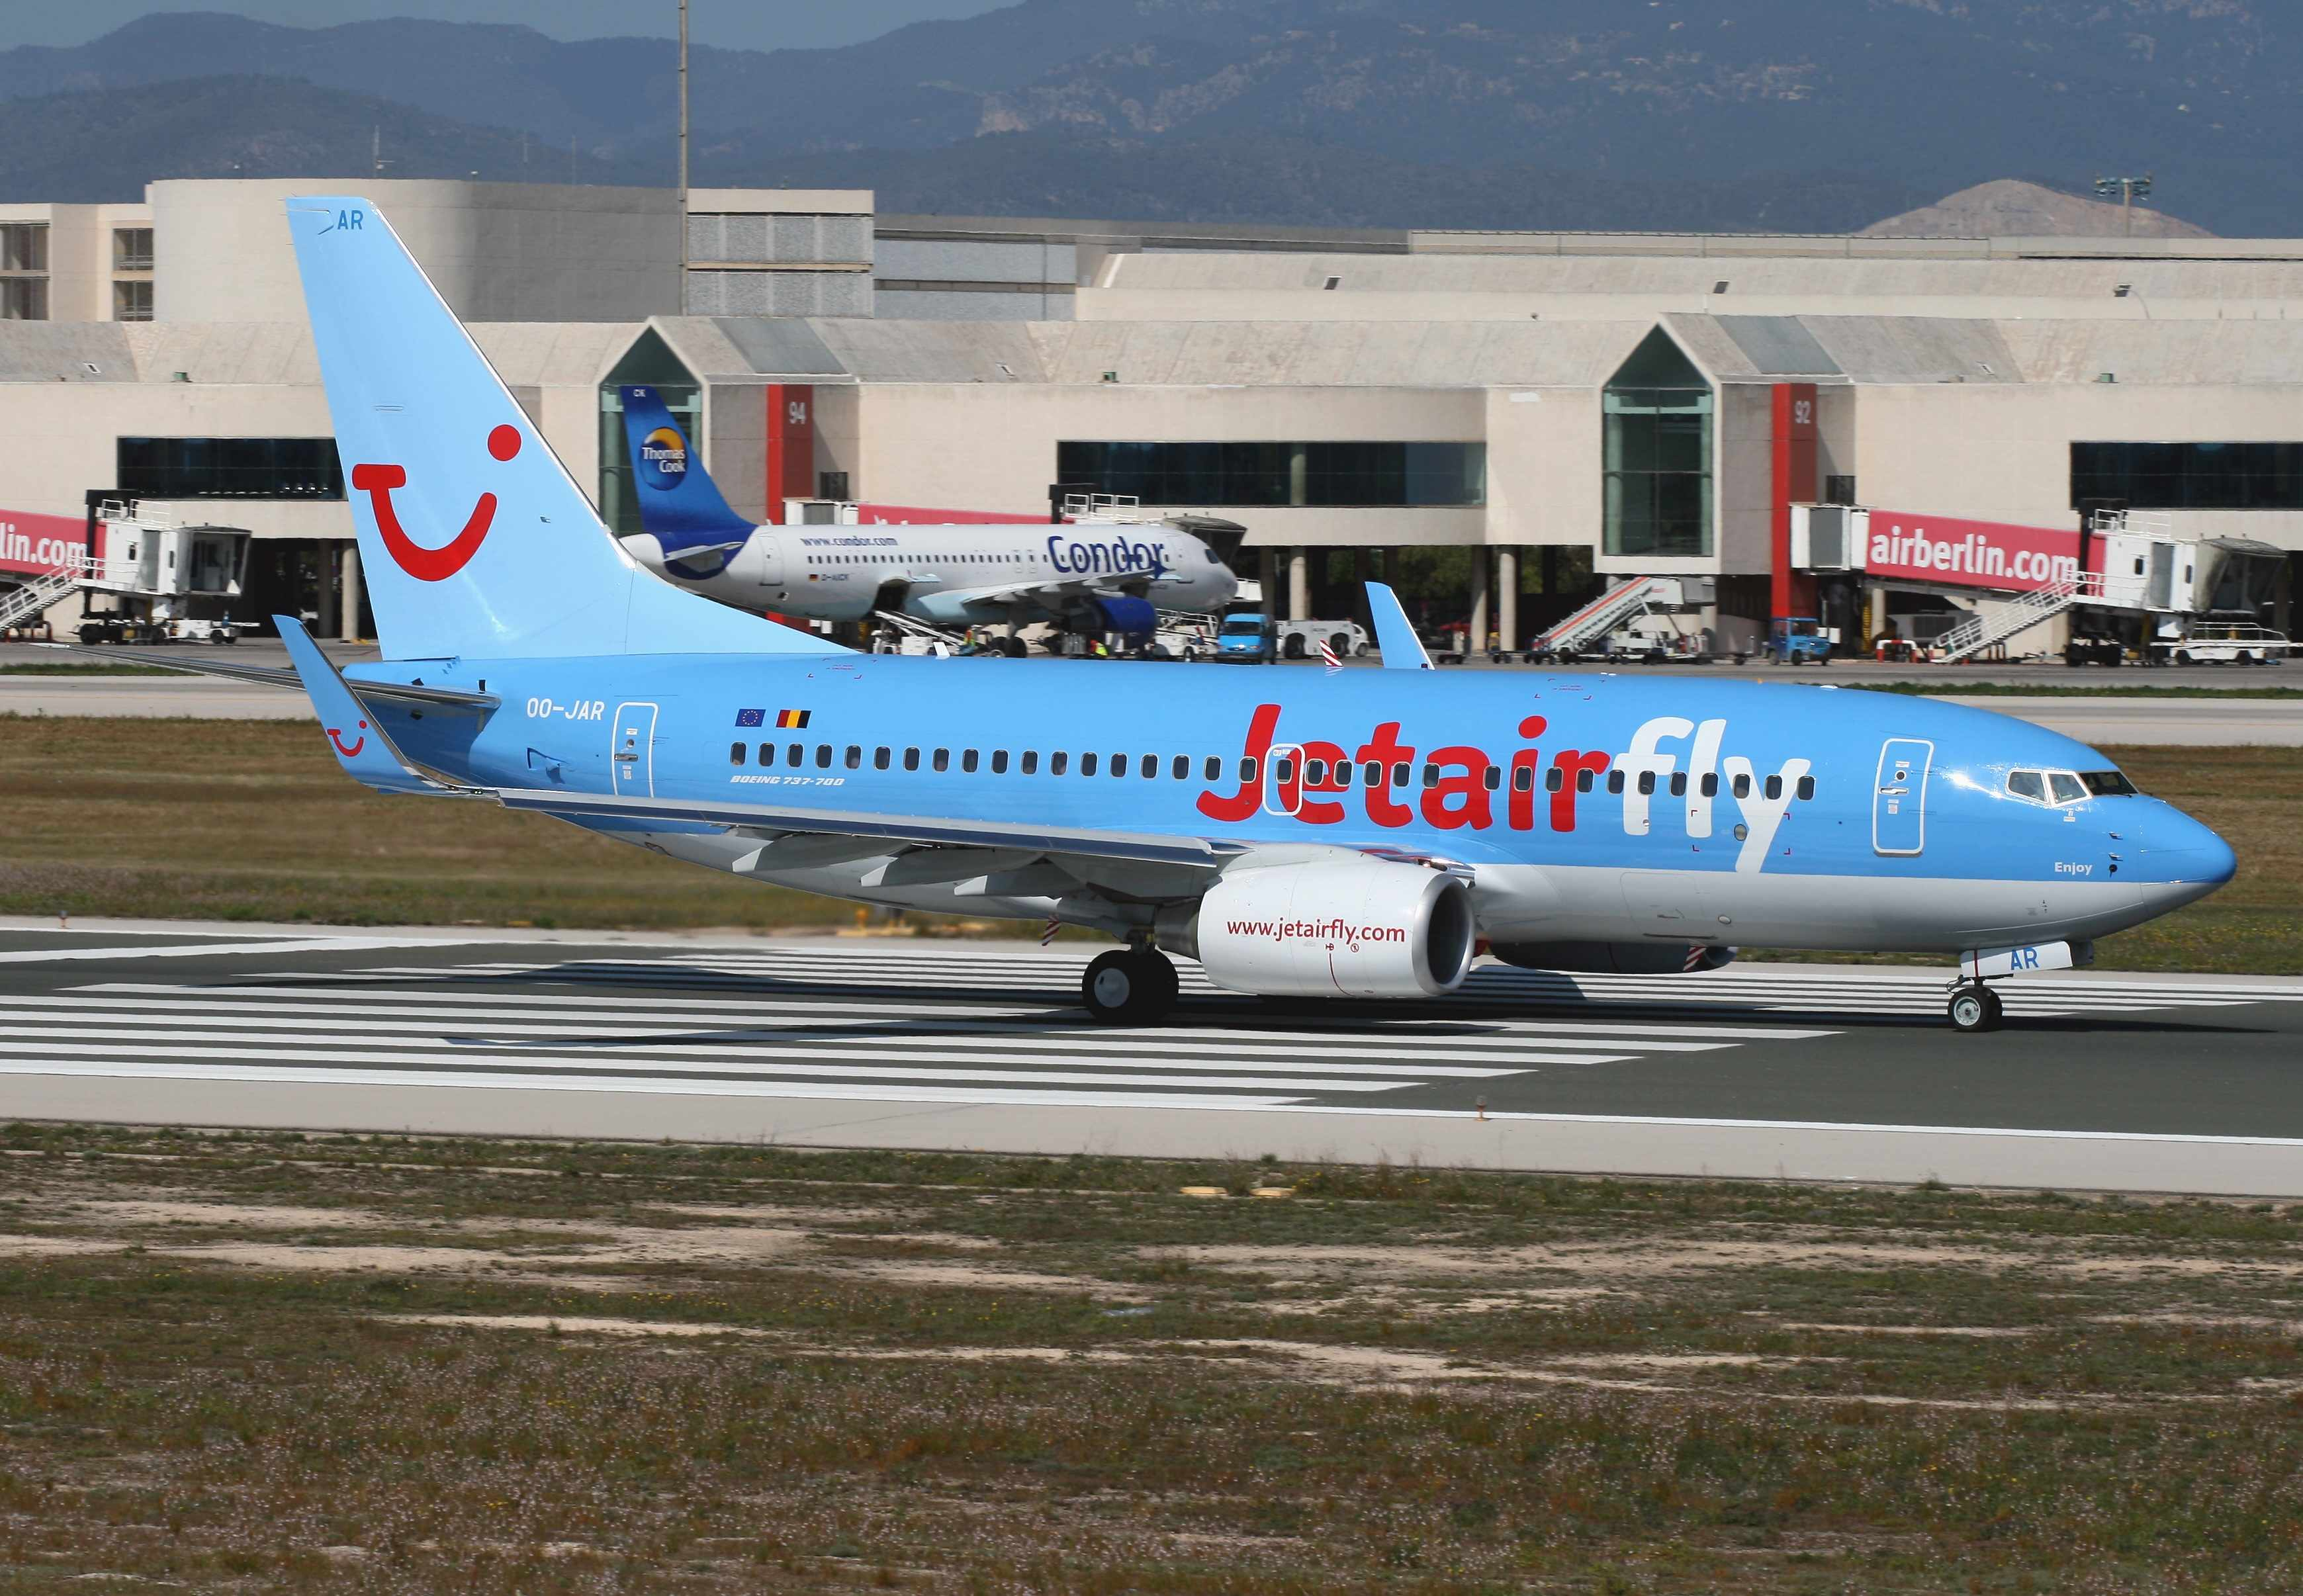 Jetairfly adds a Boeing 737-700 with winglets | World Airline News